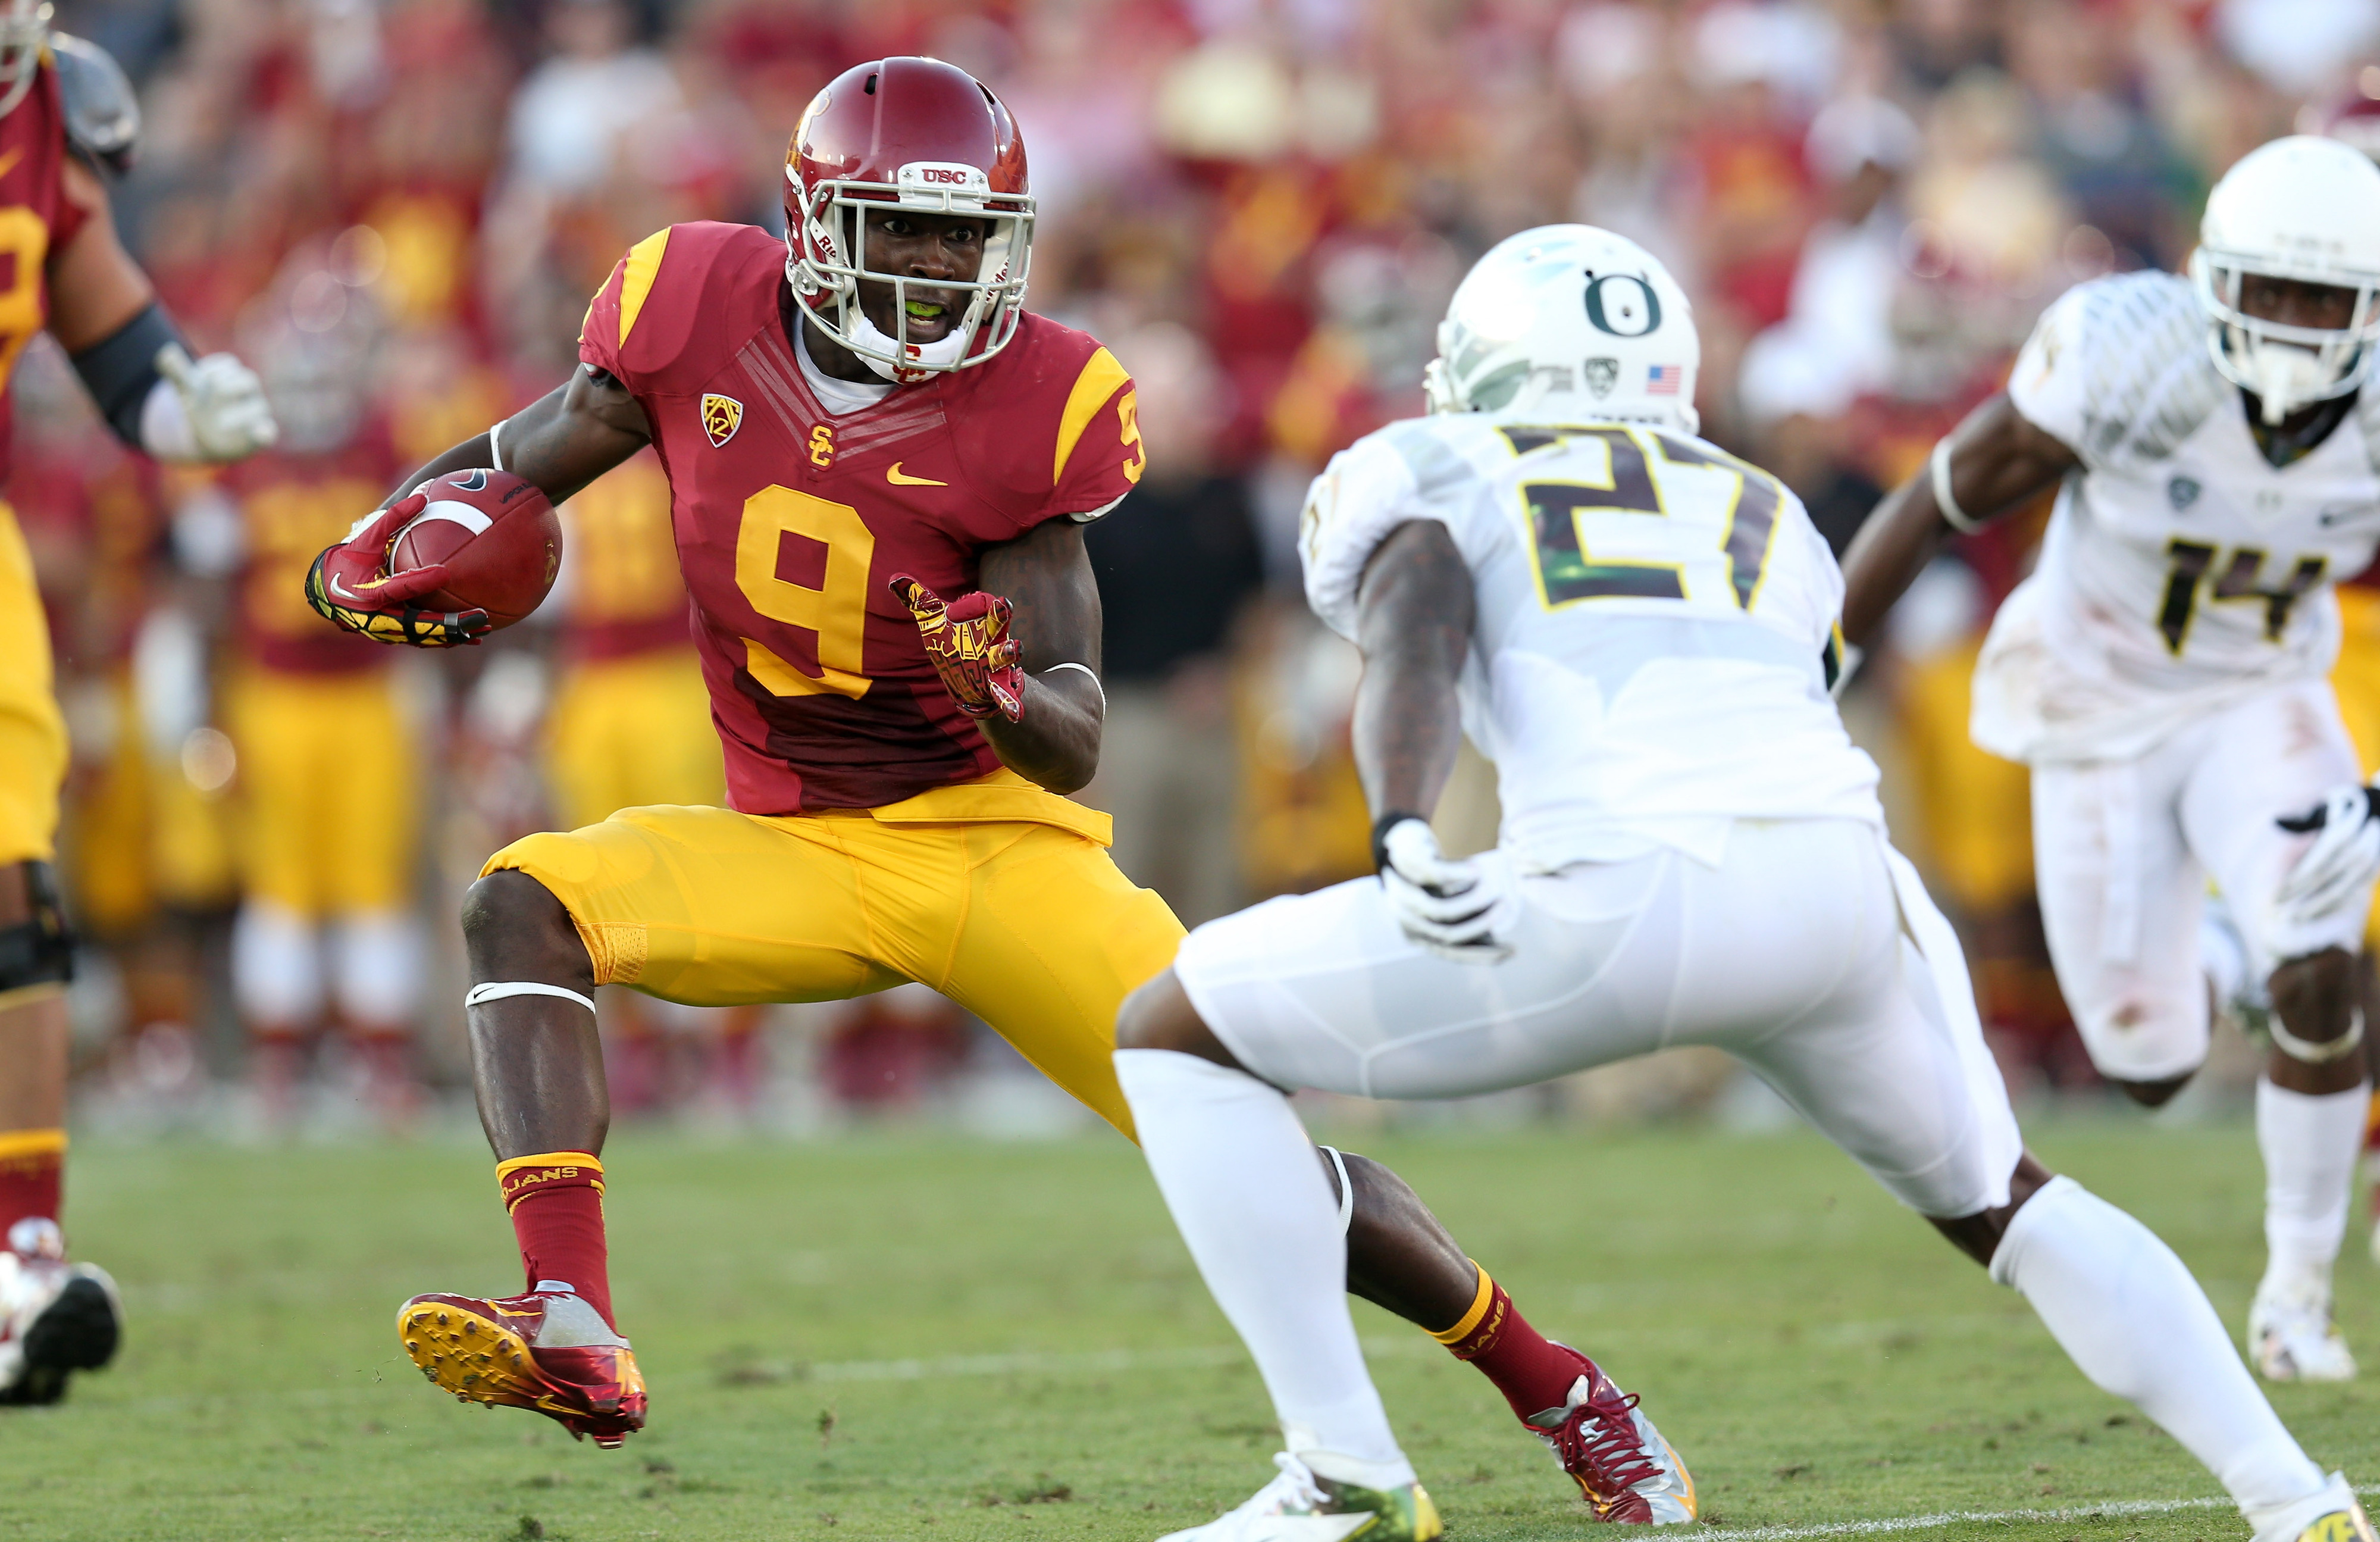 BOSS. Marquise Lee is one.